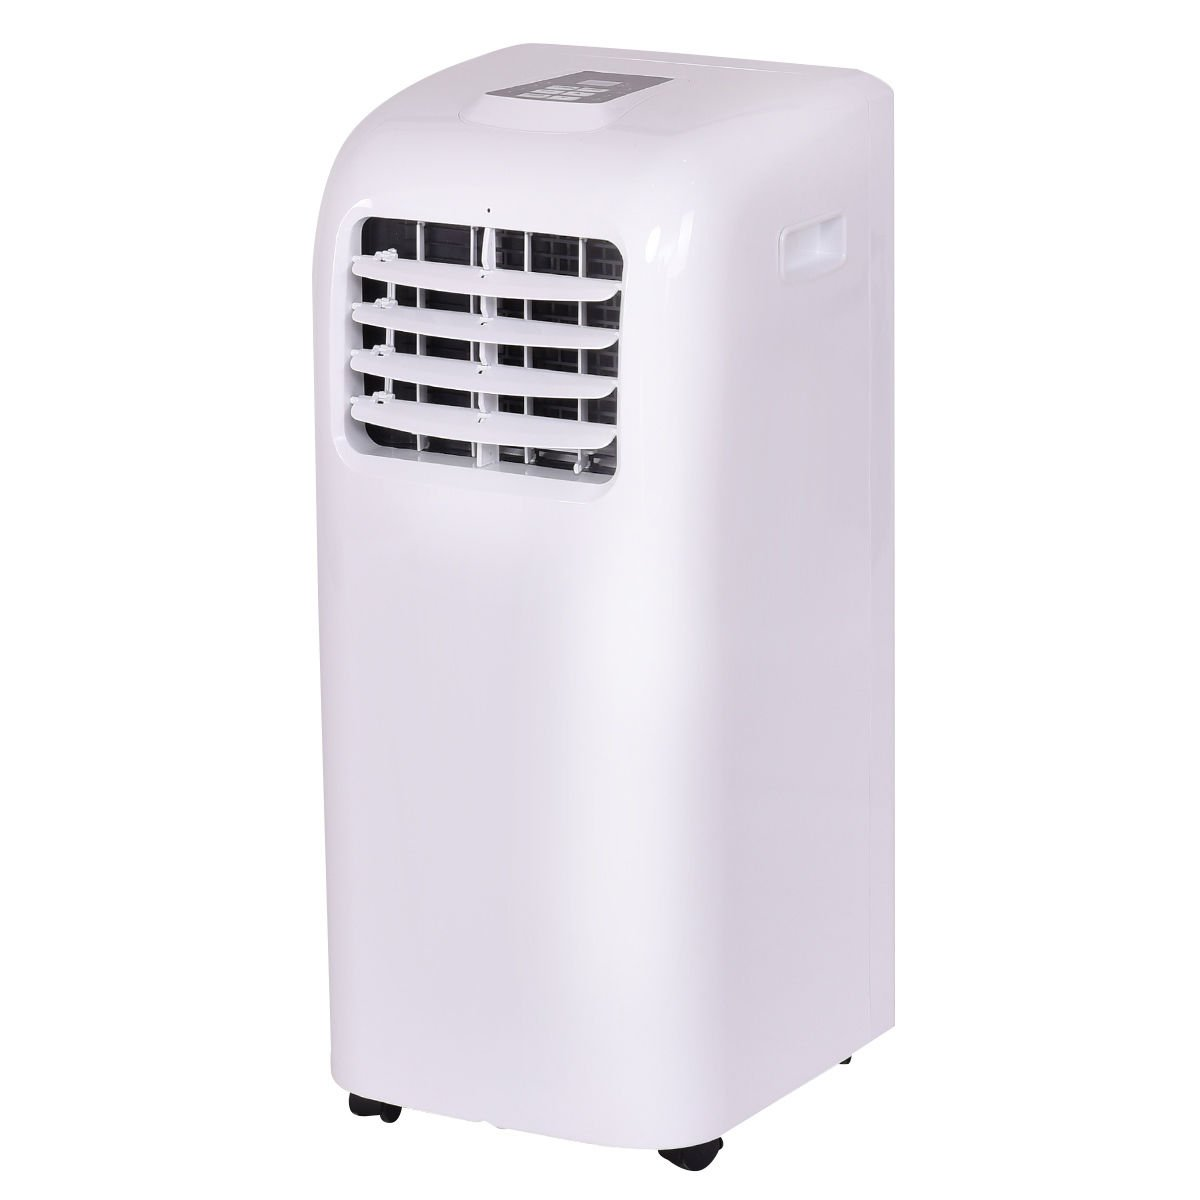 Best Portable Air Conditioner Reviews and Buying Guide for 2021 4